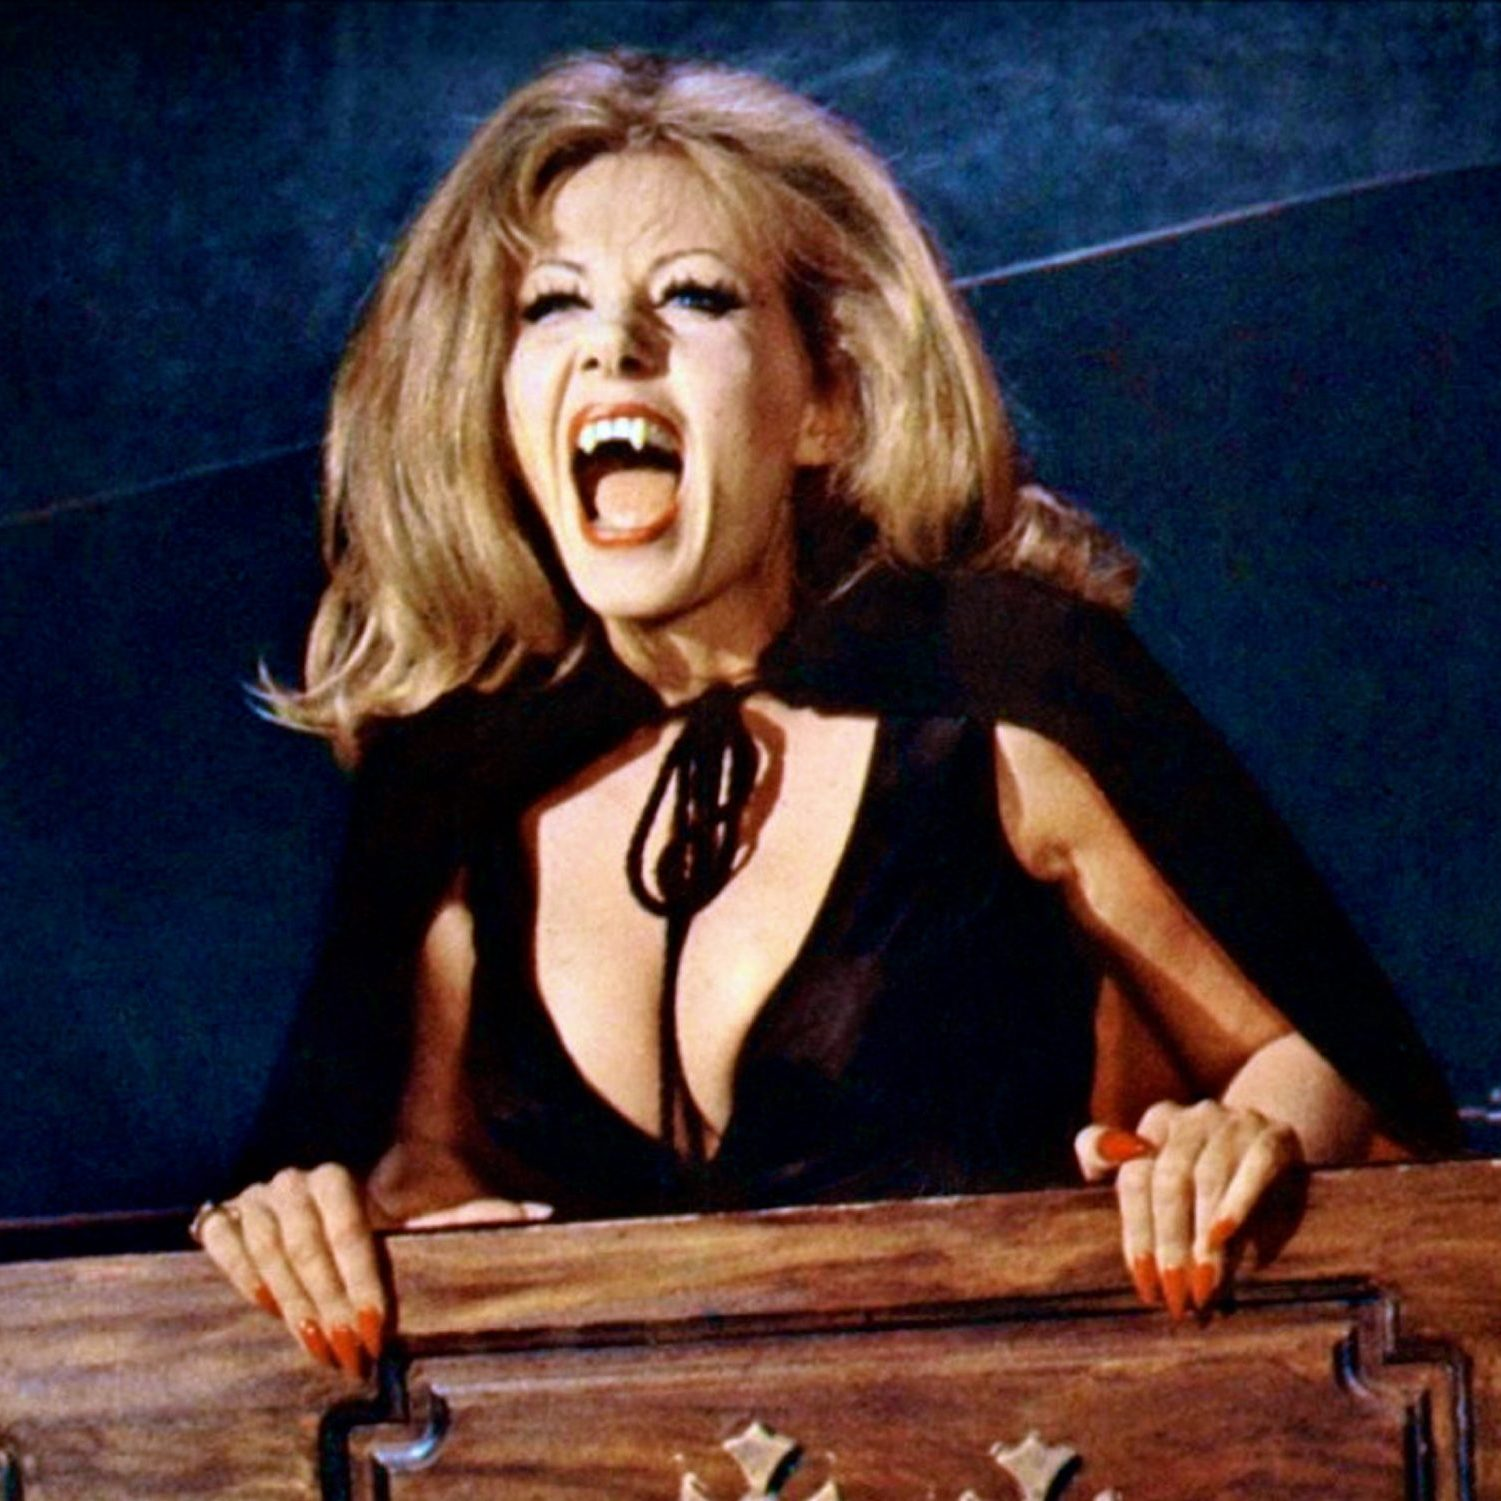 Ingrid_Pitt_The_House_That_Dripped_Blood-2-scaled